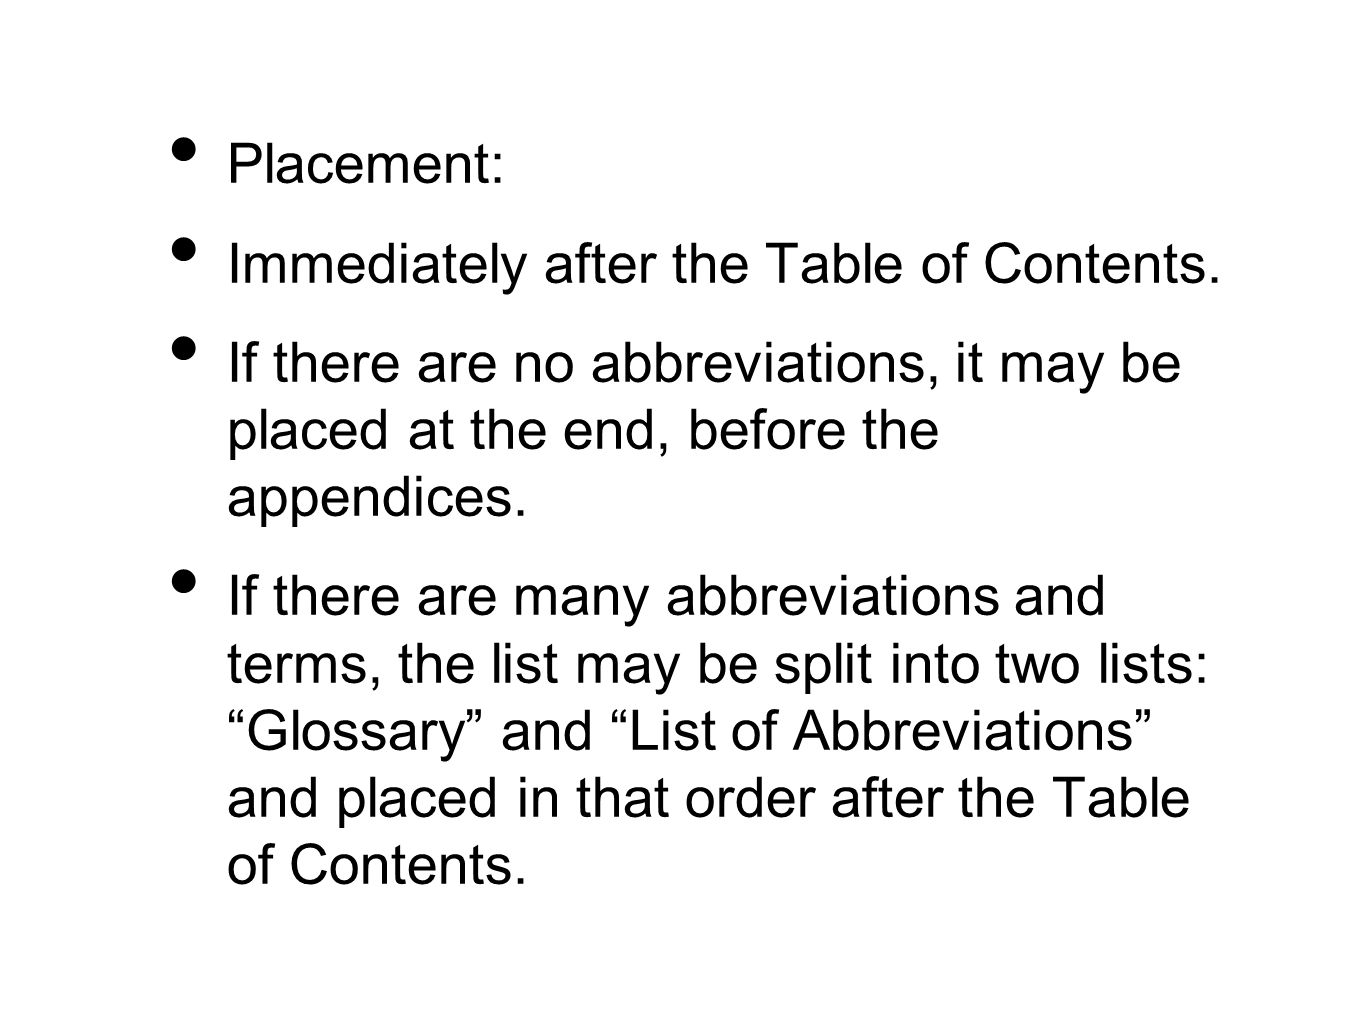 Placement: Immediately after the Table of Contents. If there are no abbreviations, it may be placed at the end, before the appendices.